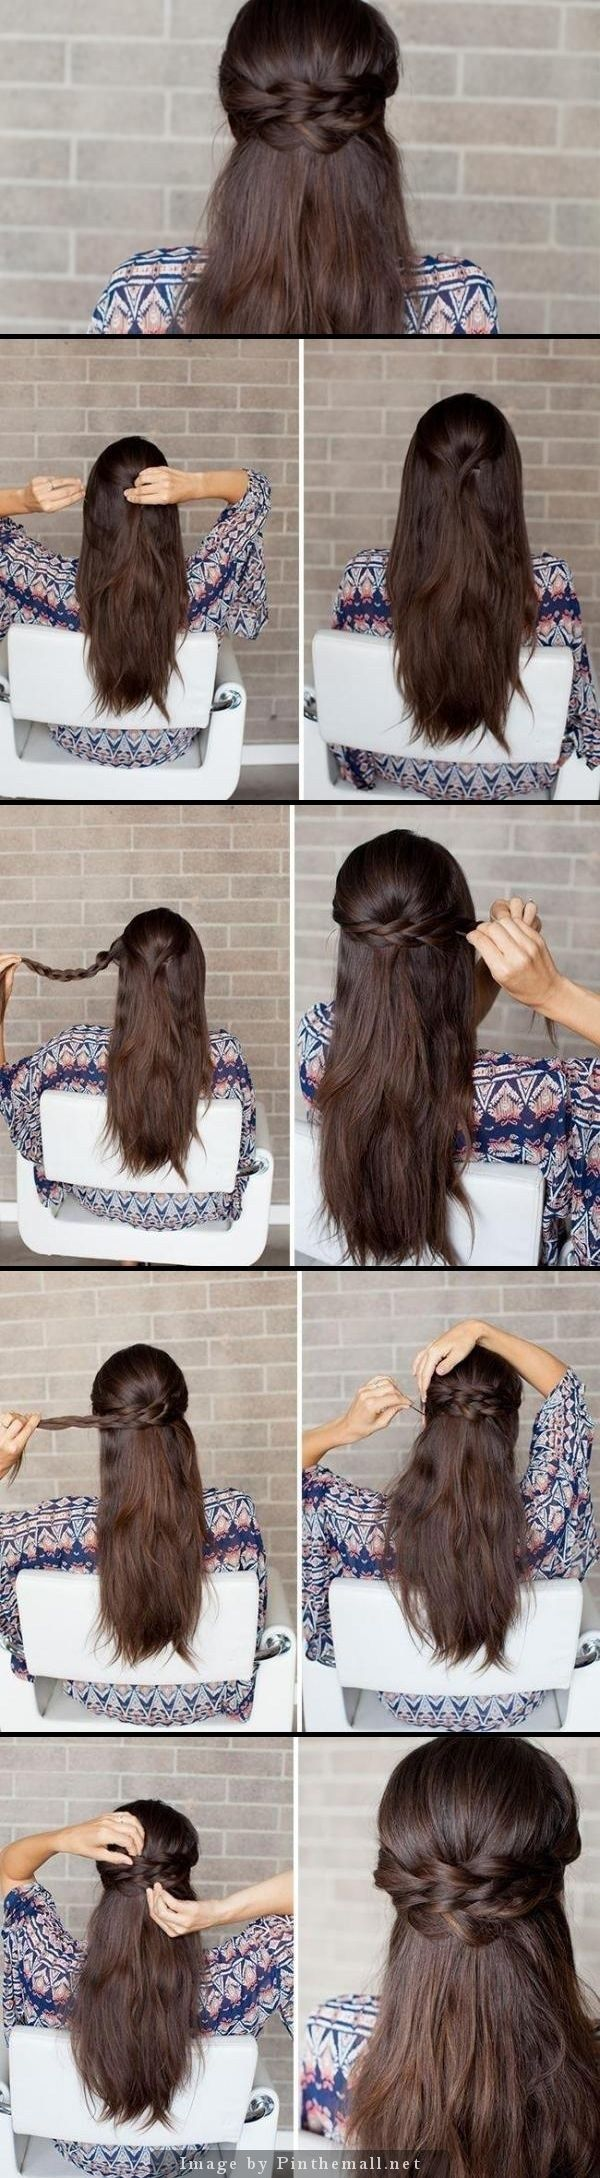 easy half up half down hairstyles step by step popular